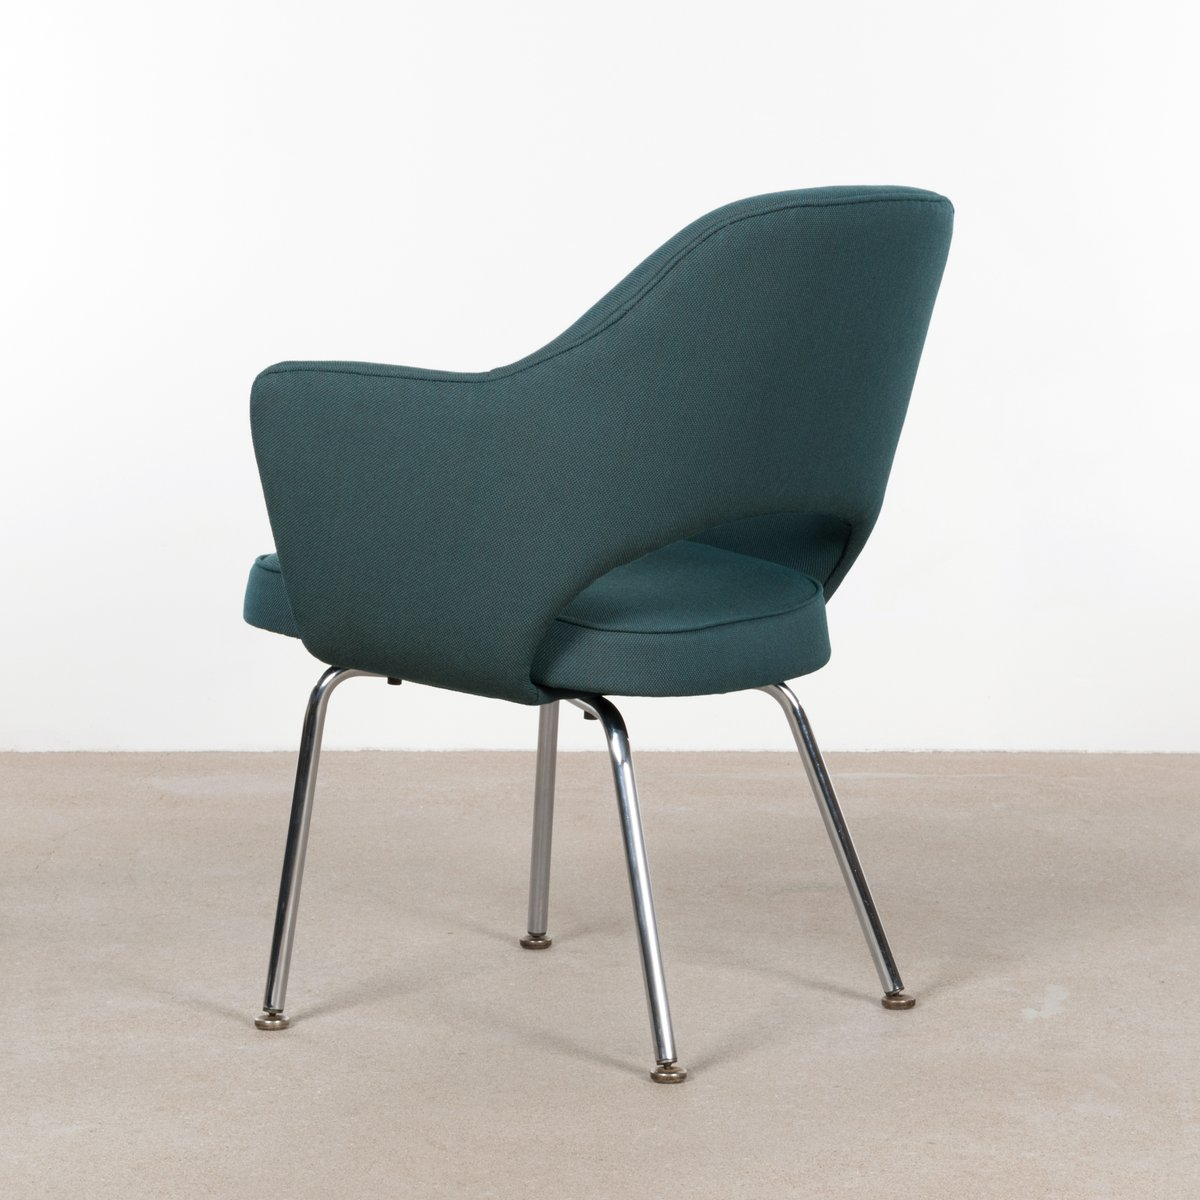 Marvelous Executive Armchair By Eero Saarinen For Knoll U0026 De Coene, 1960s